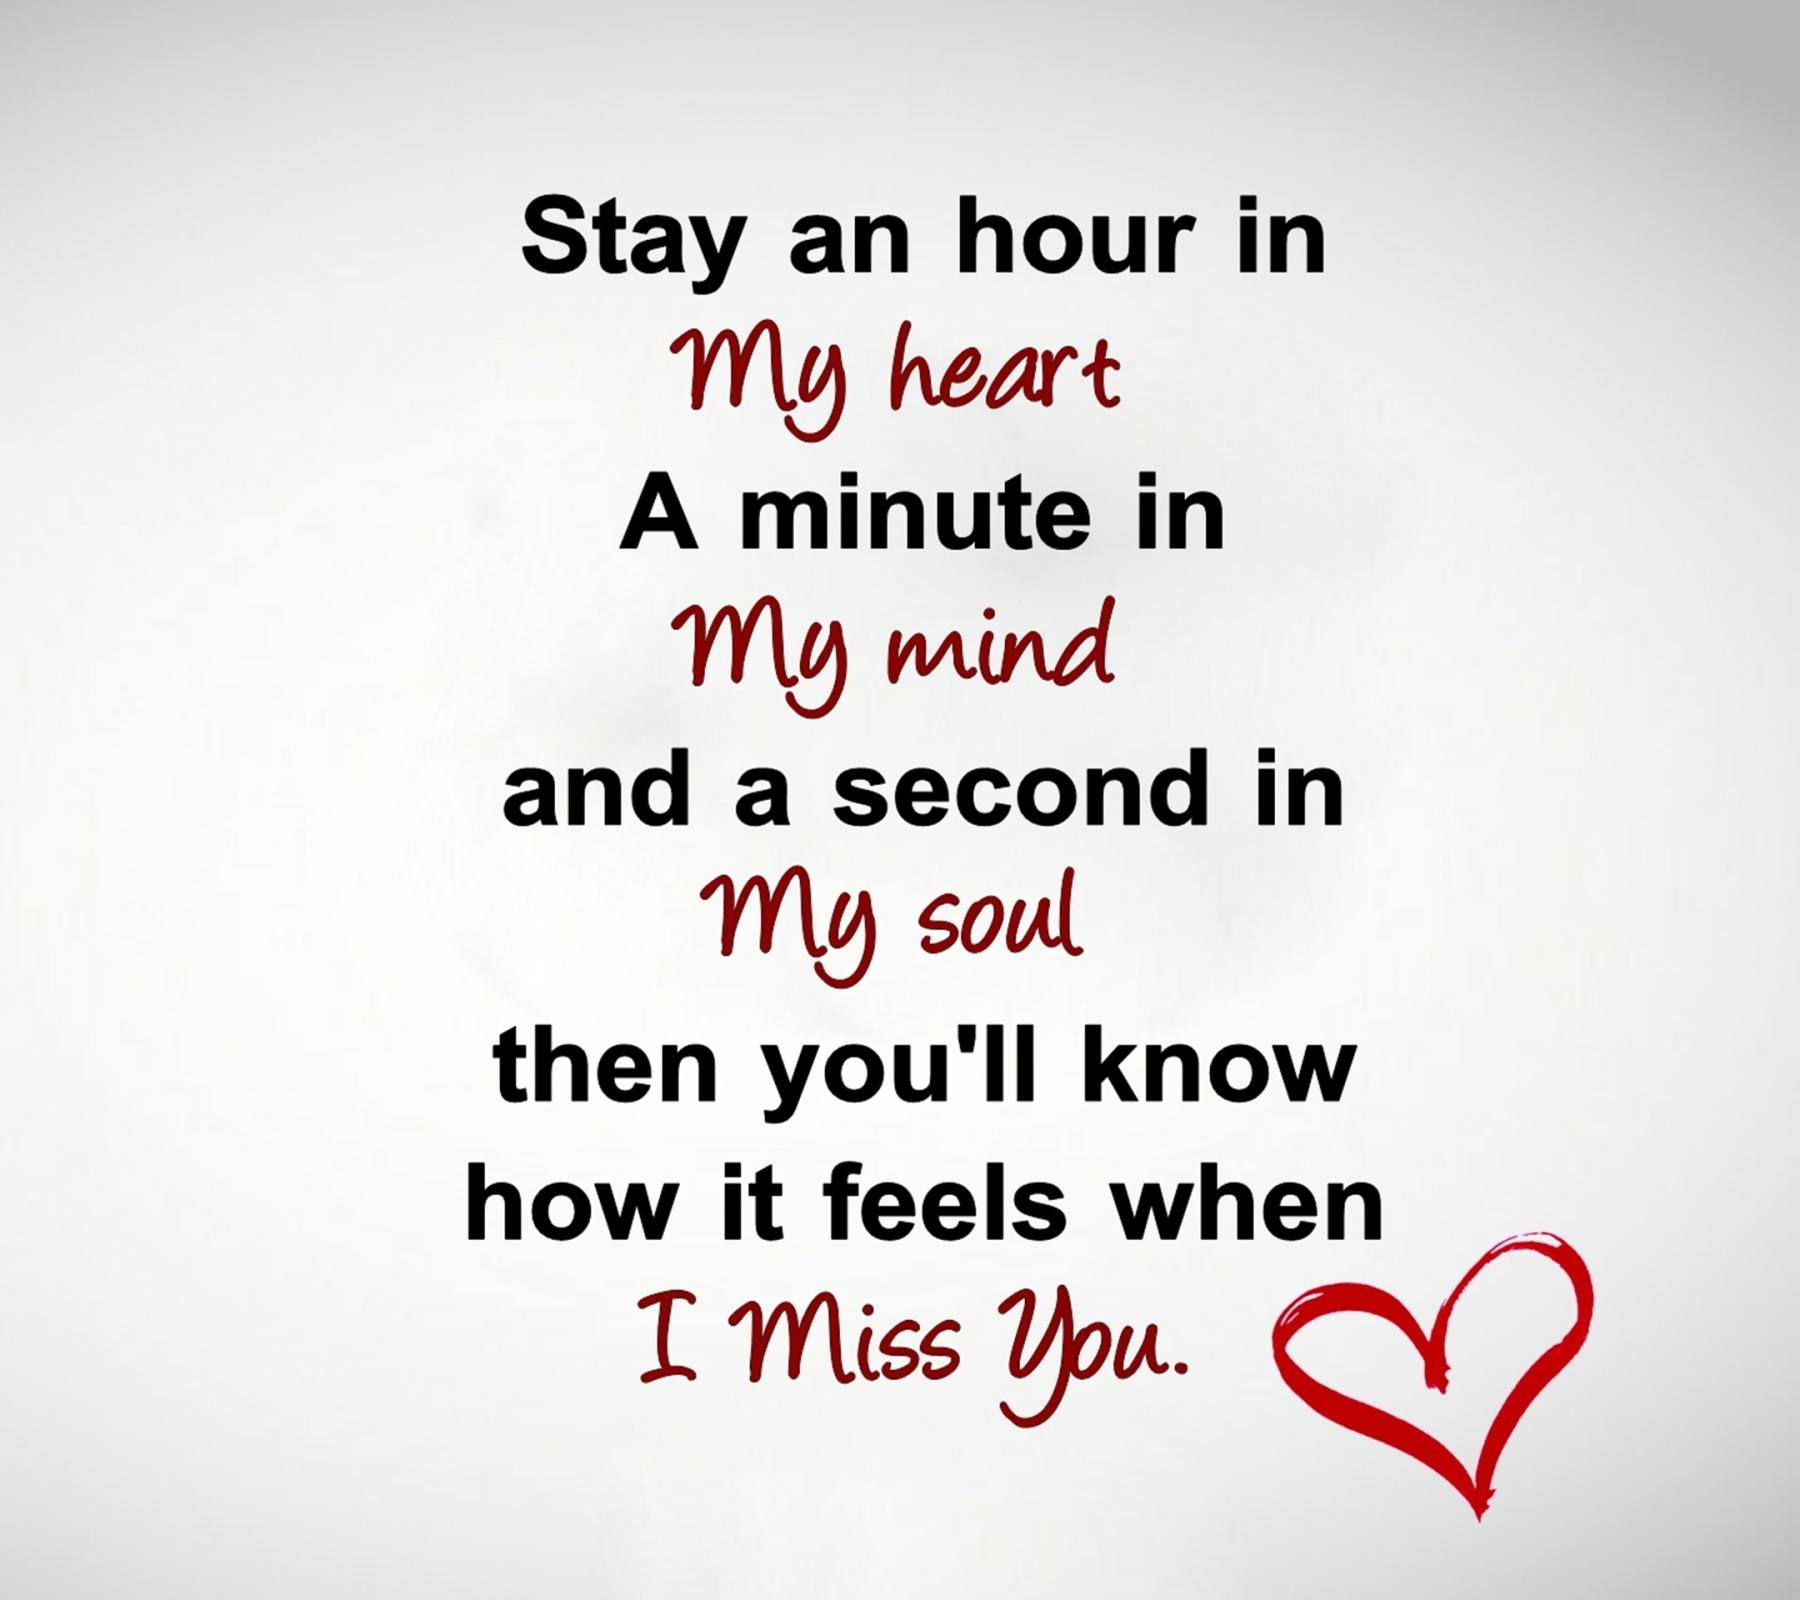 I Miss You Quotes Inspirational. QuotesGram